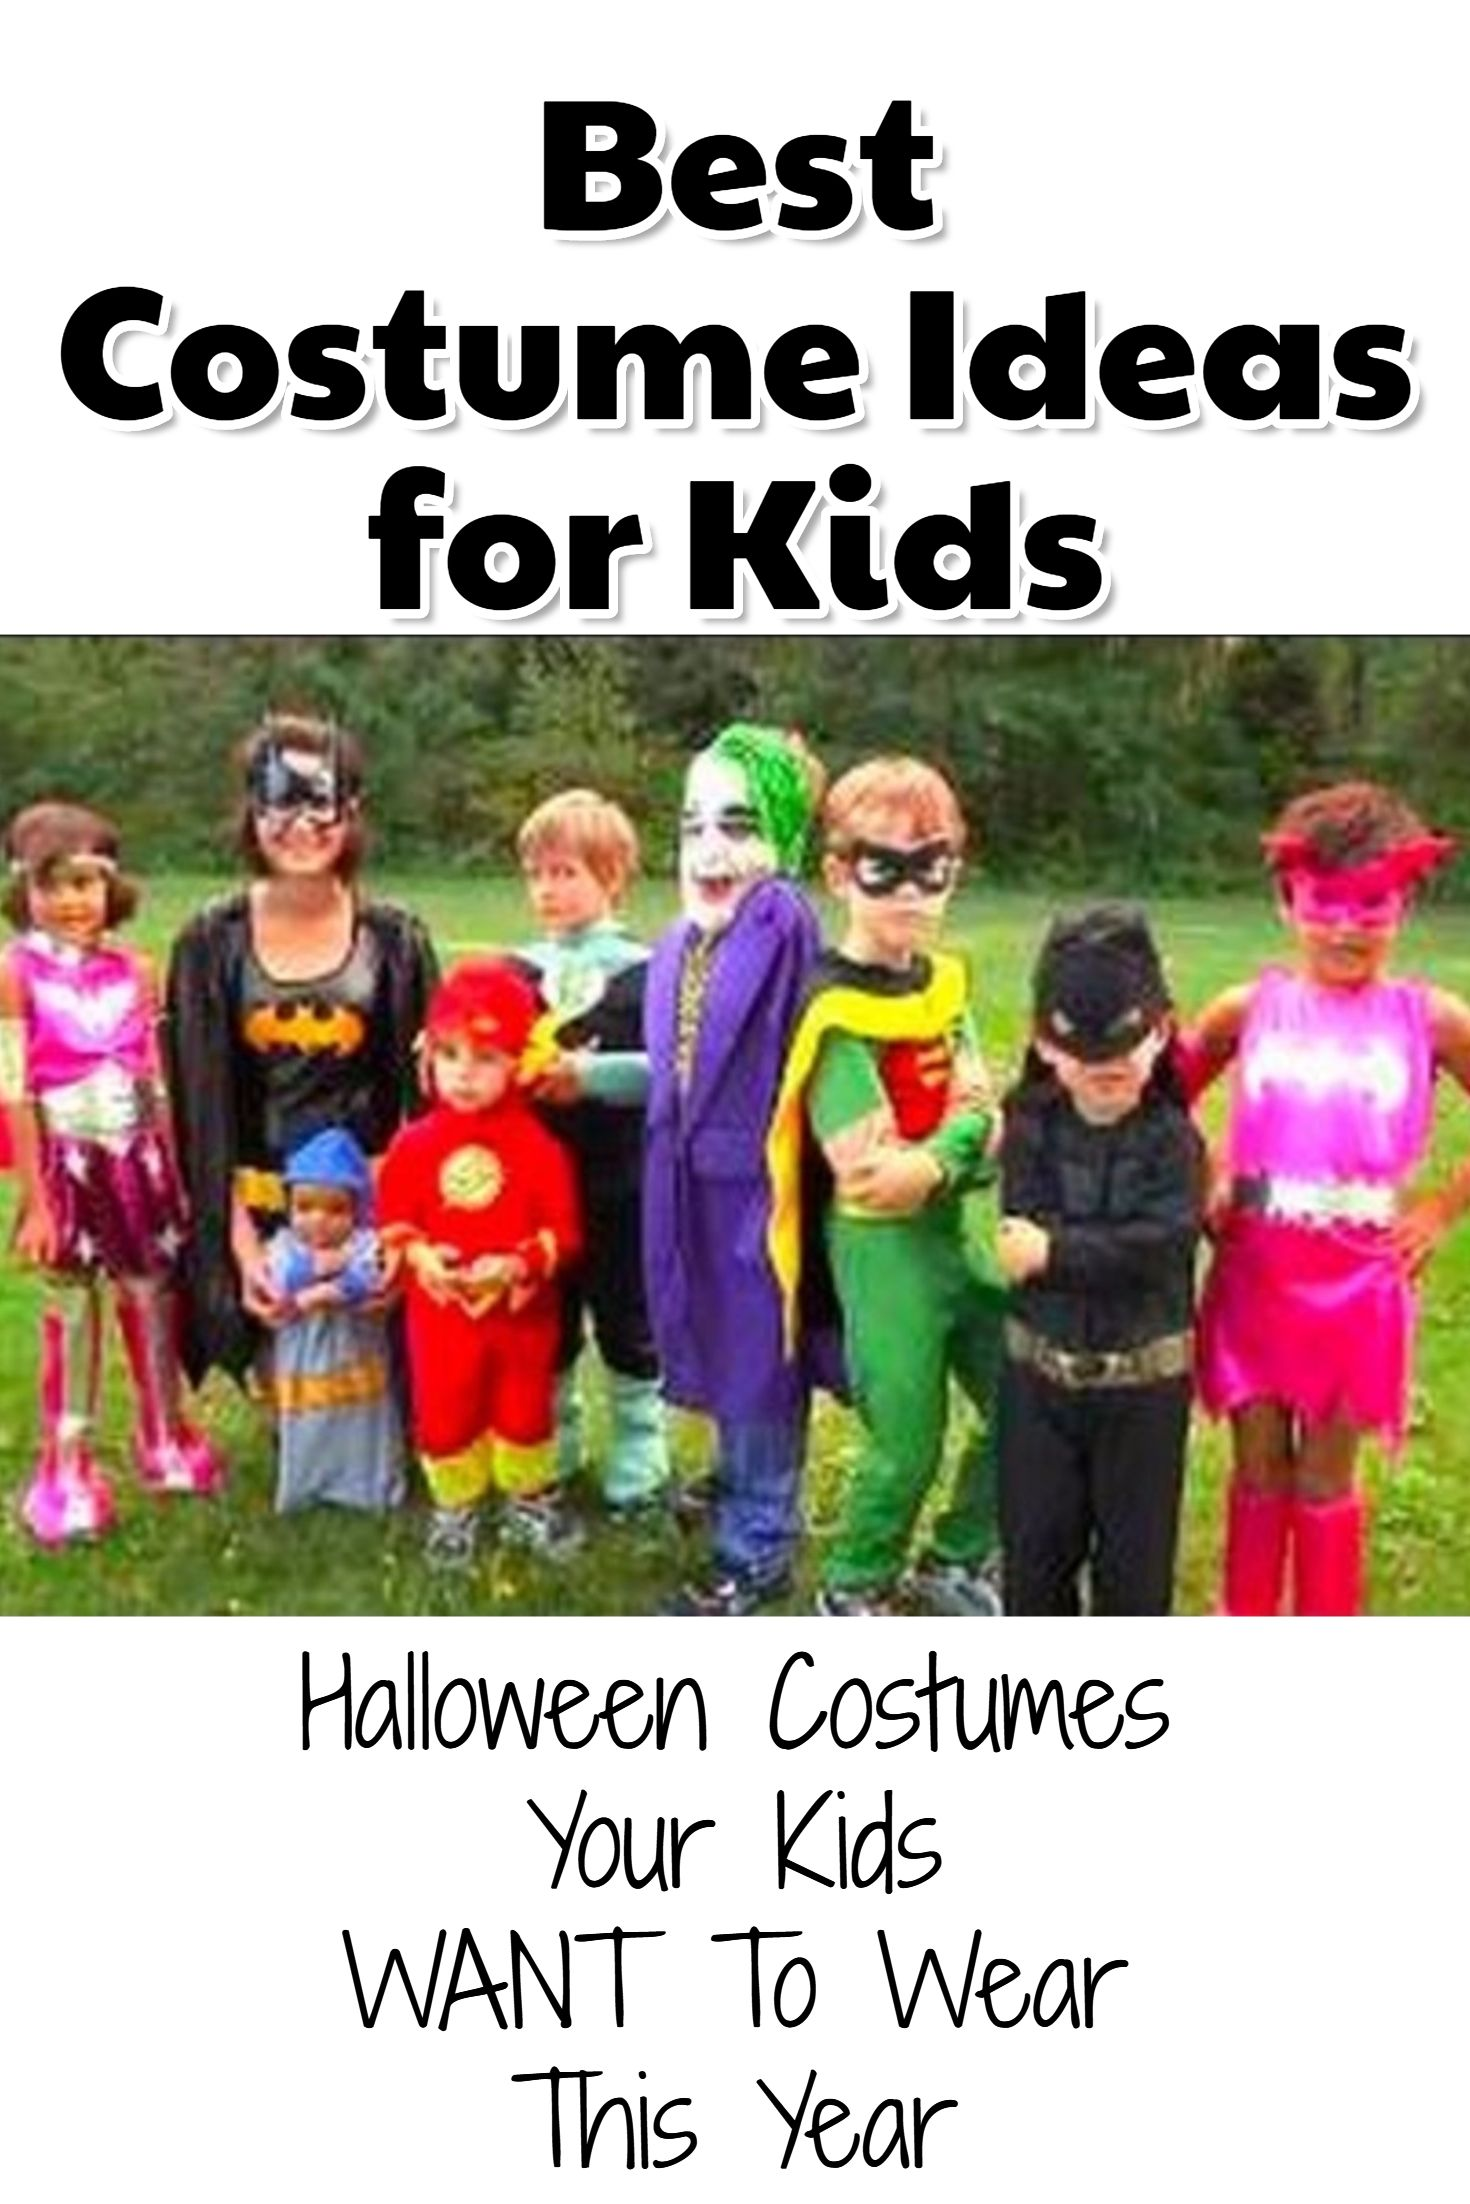 2020 Most Popular Childrens Halloween Costumes Most Popular Kid's Halloween Costumes for Halloween 2020 (CUTE